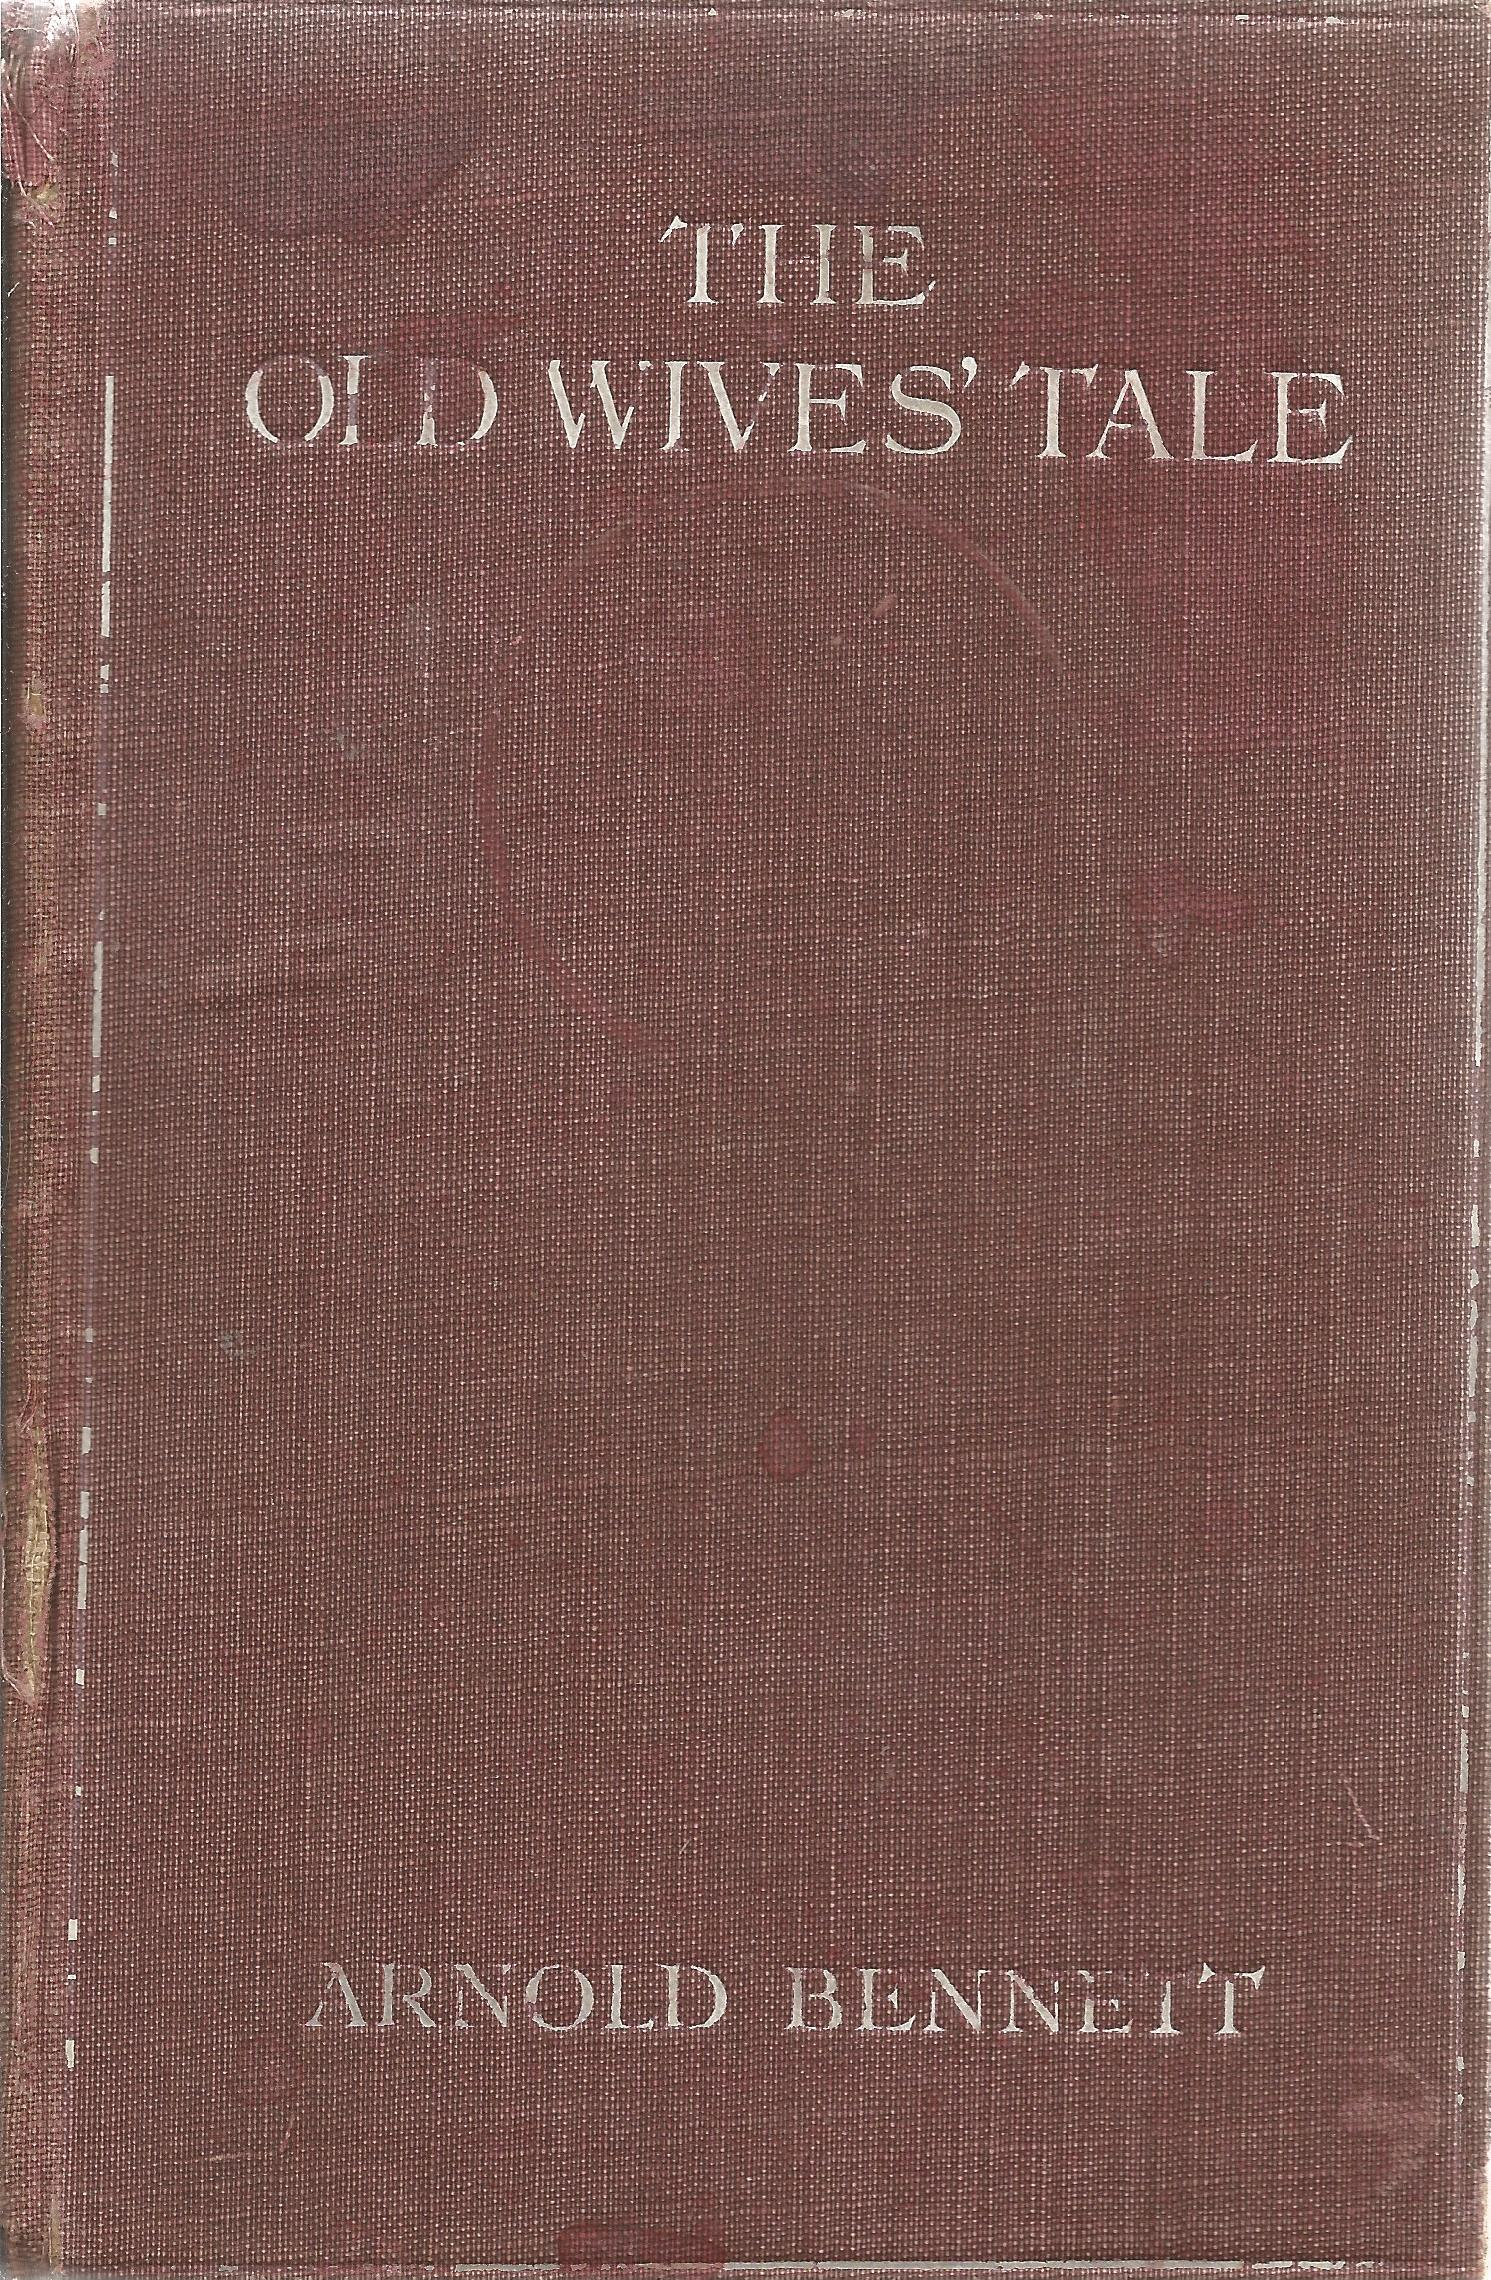 Hardback Book The Old Wives' Tale A Novel by Arnold Bennett 1908 First Edition published by